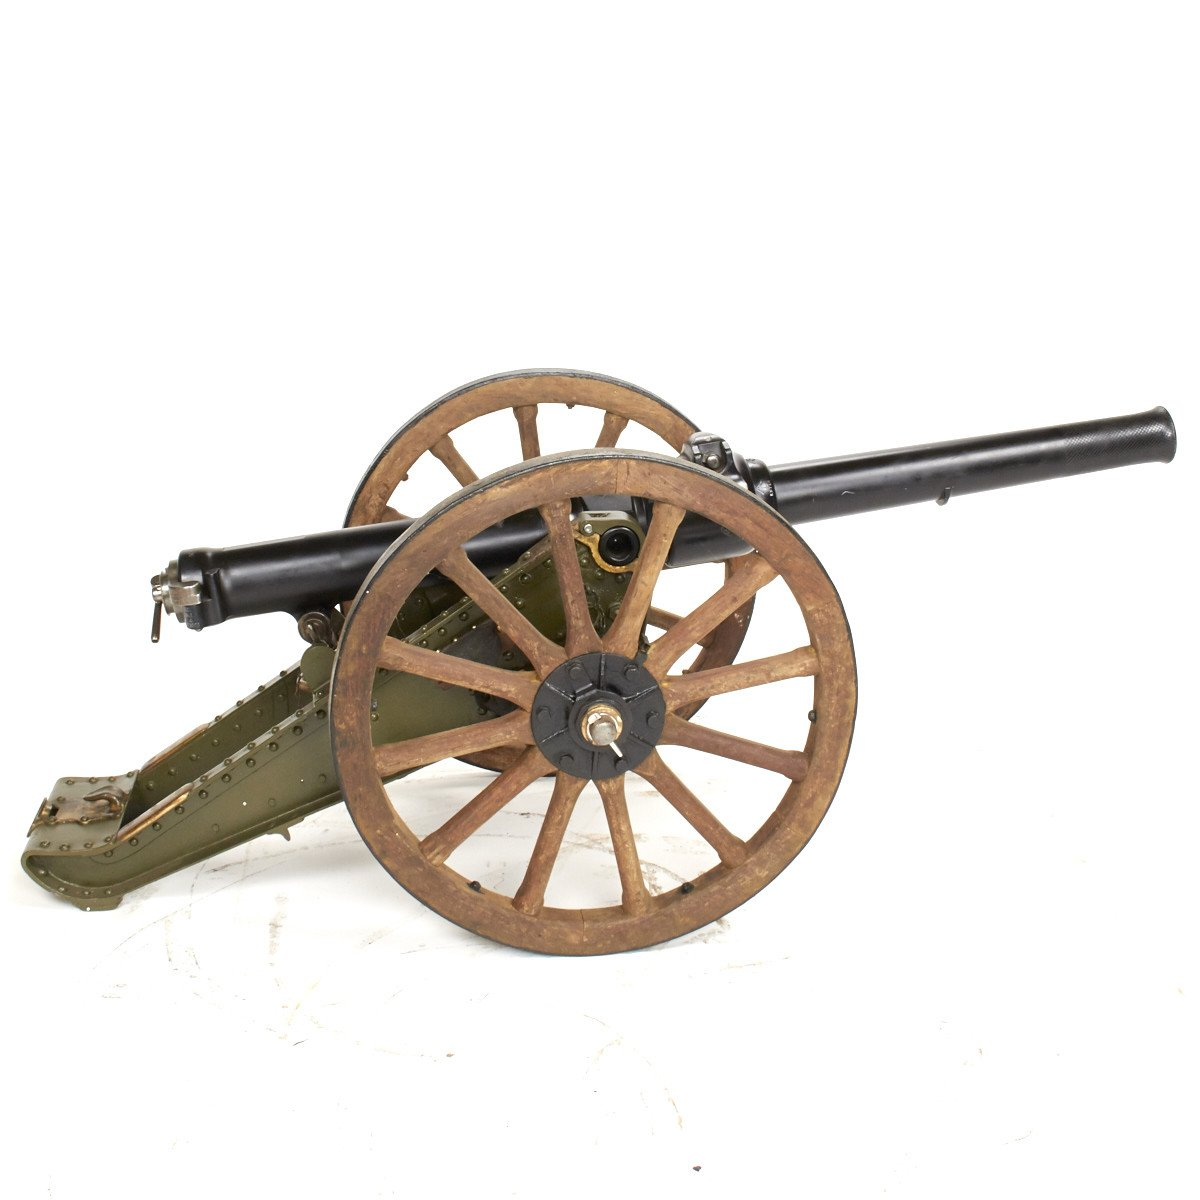 original british rml 2 5 inch 10 pounder jointed mountain cannon